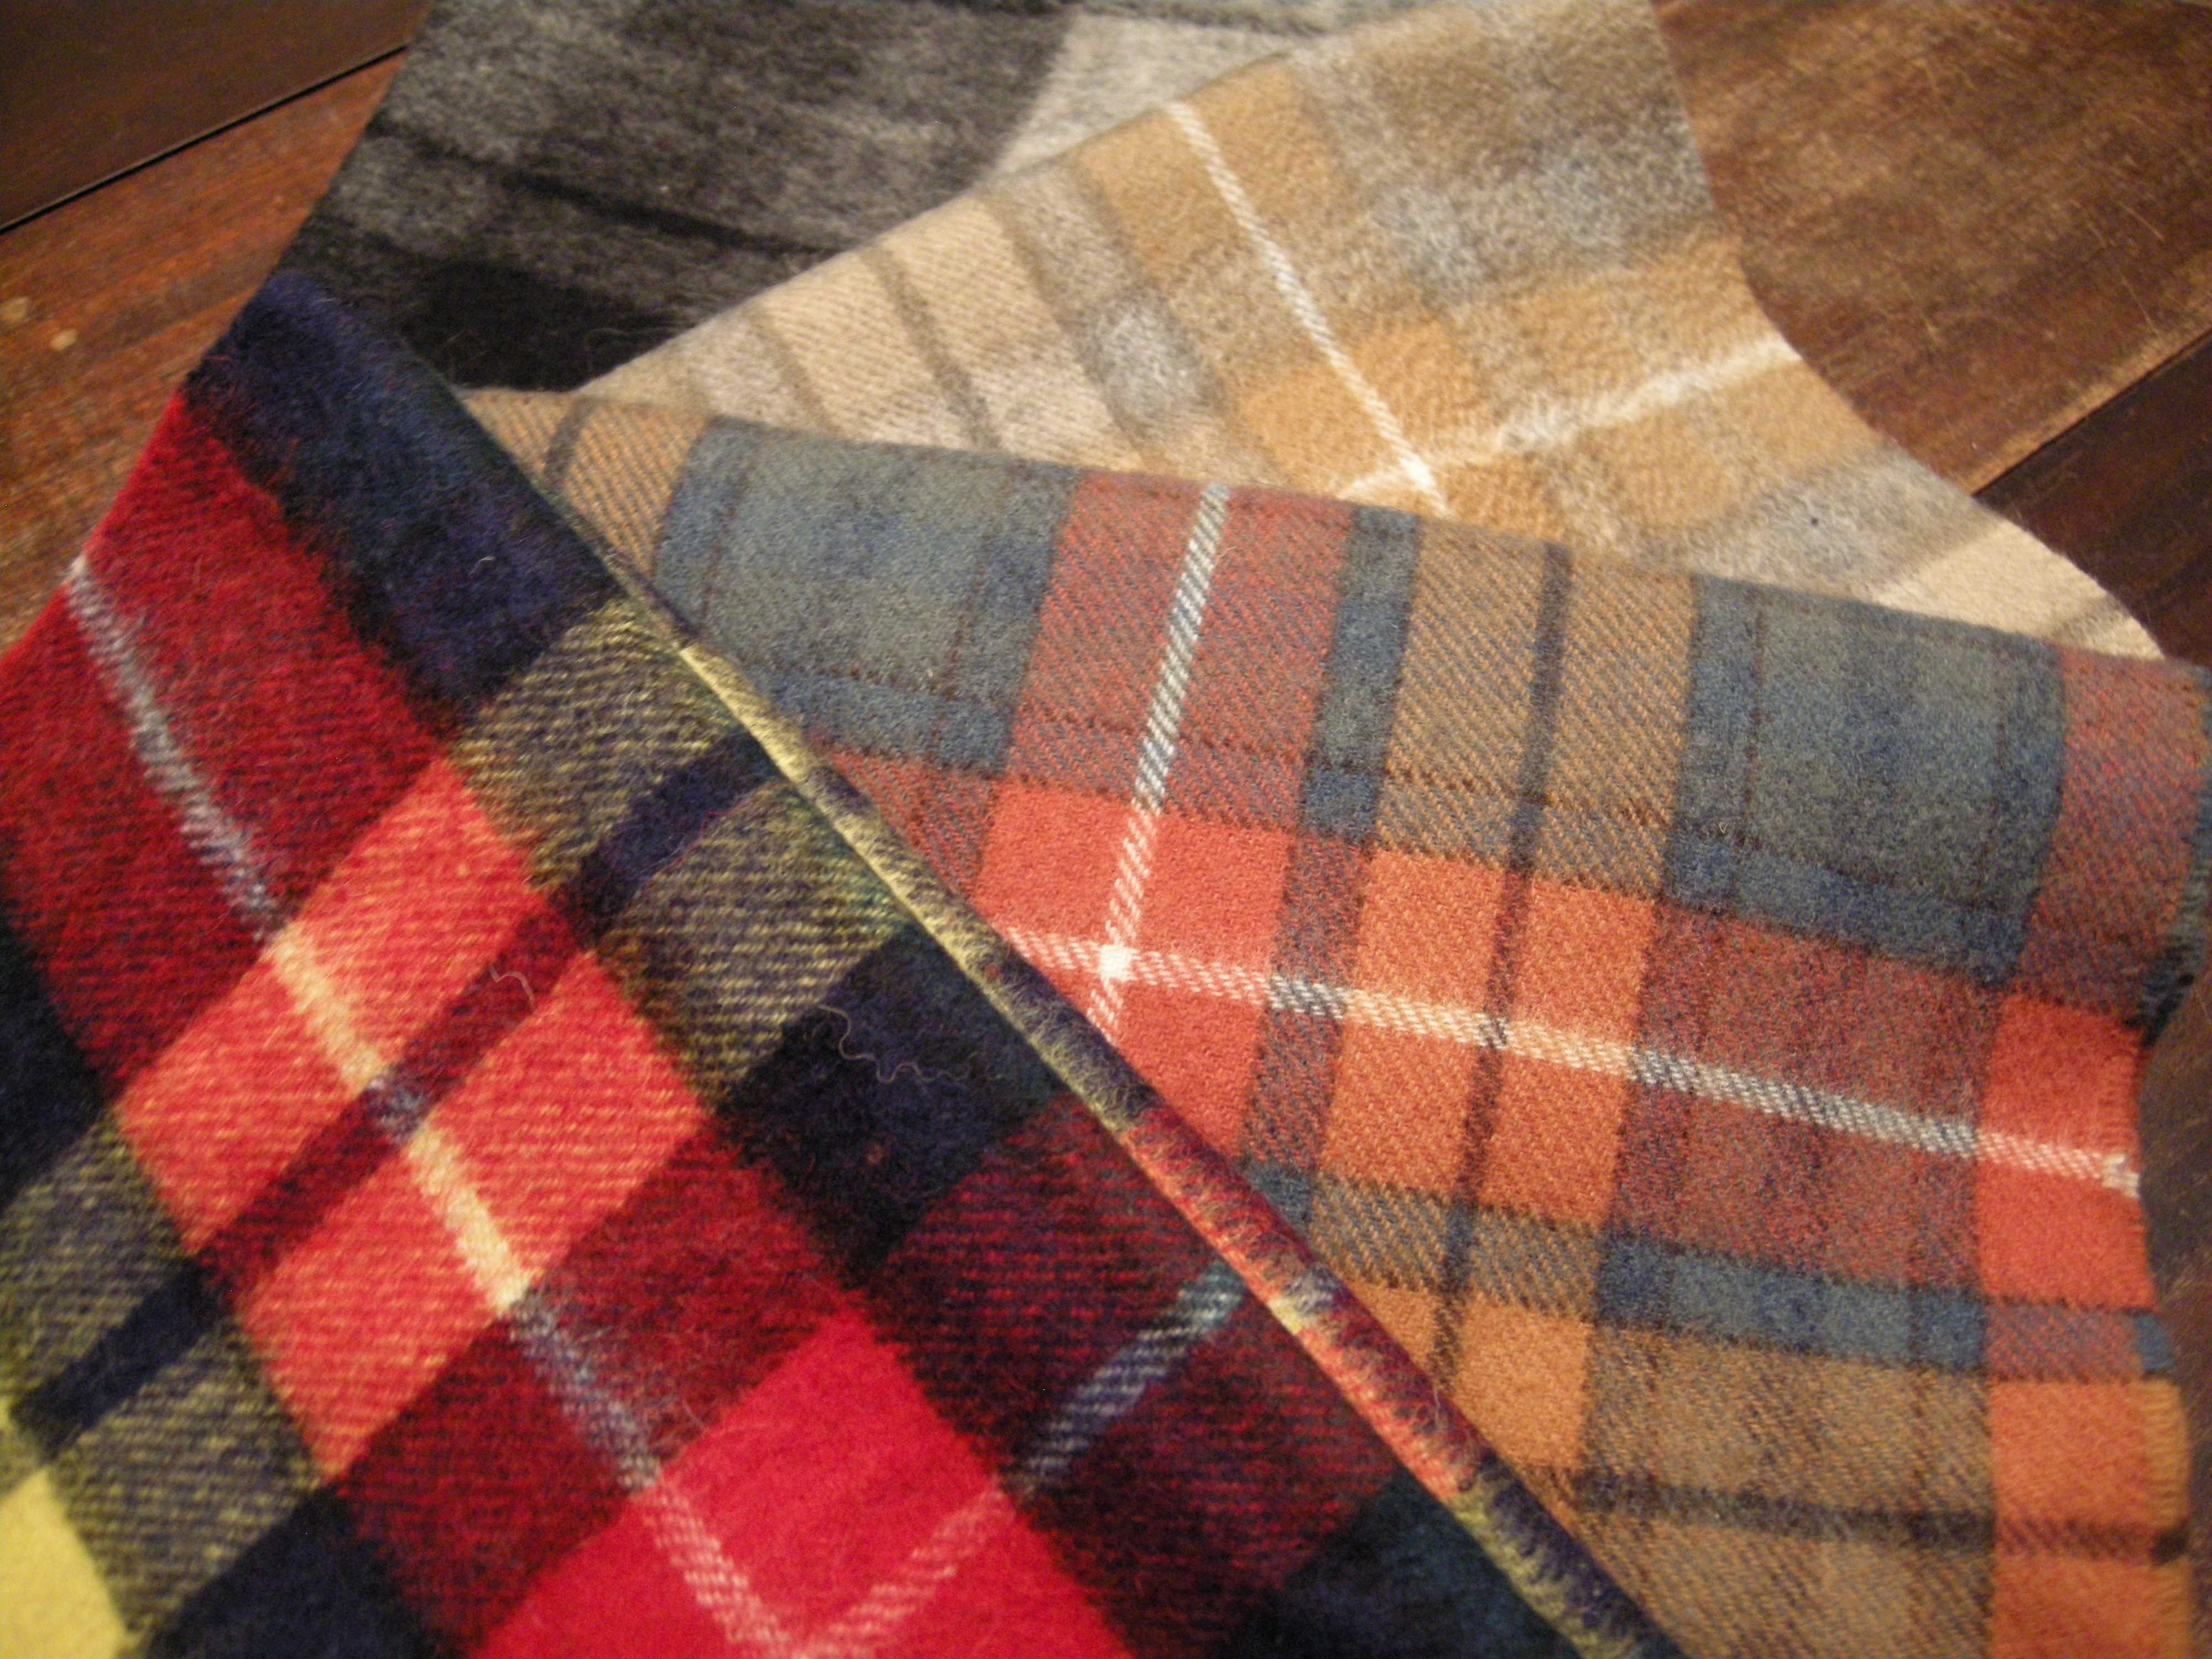 Exploring Tartans | The Power of Play